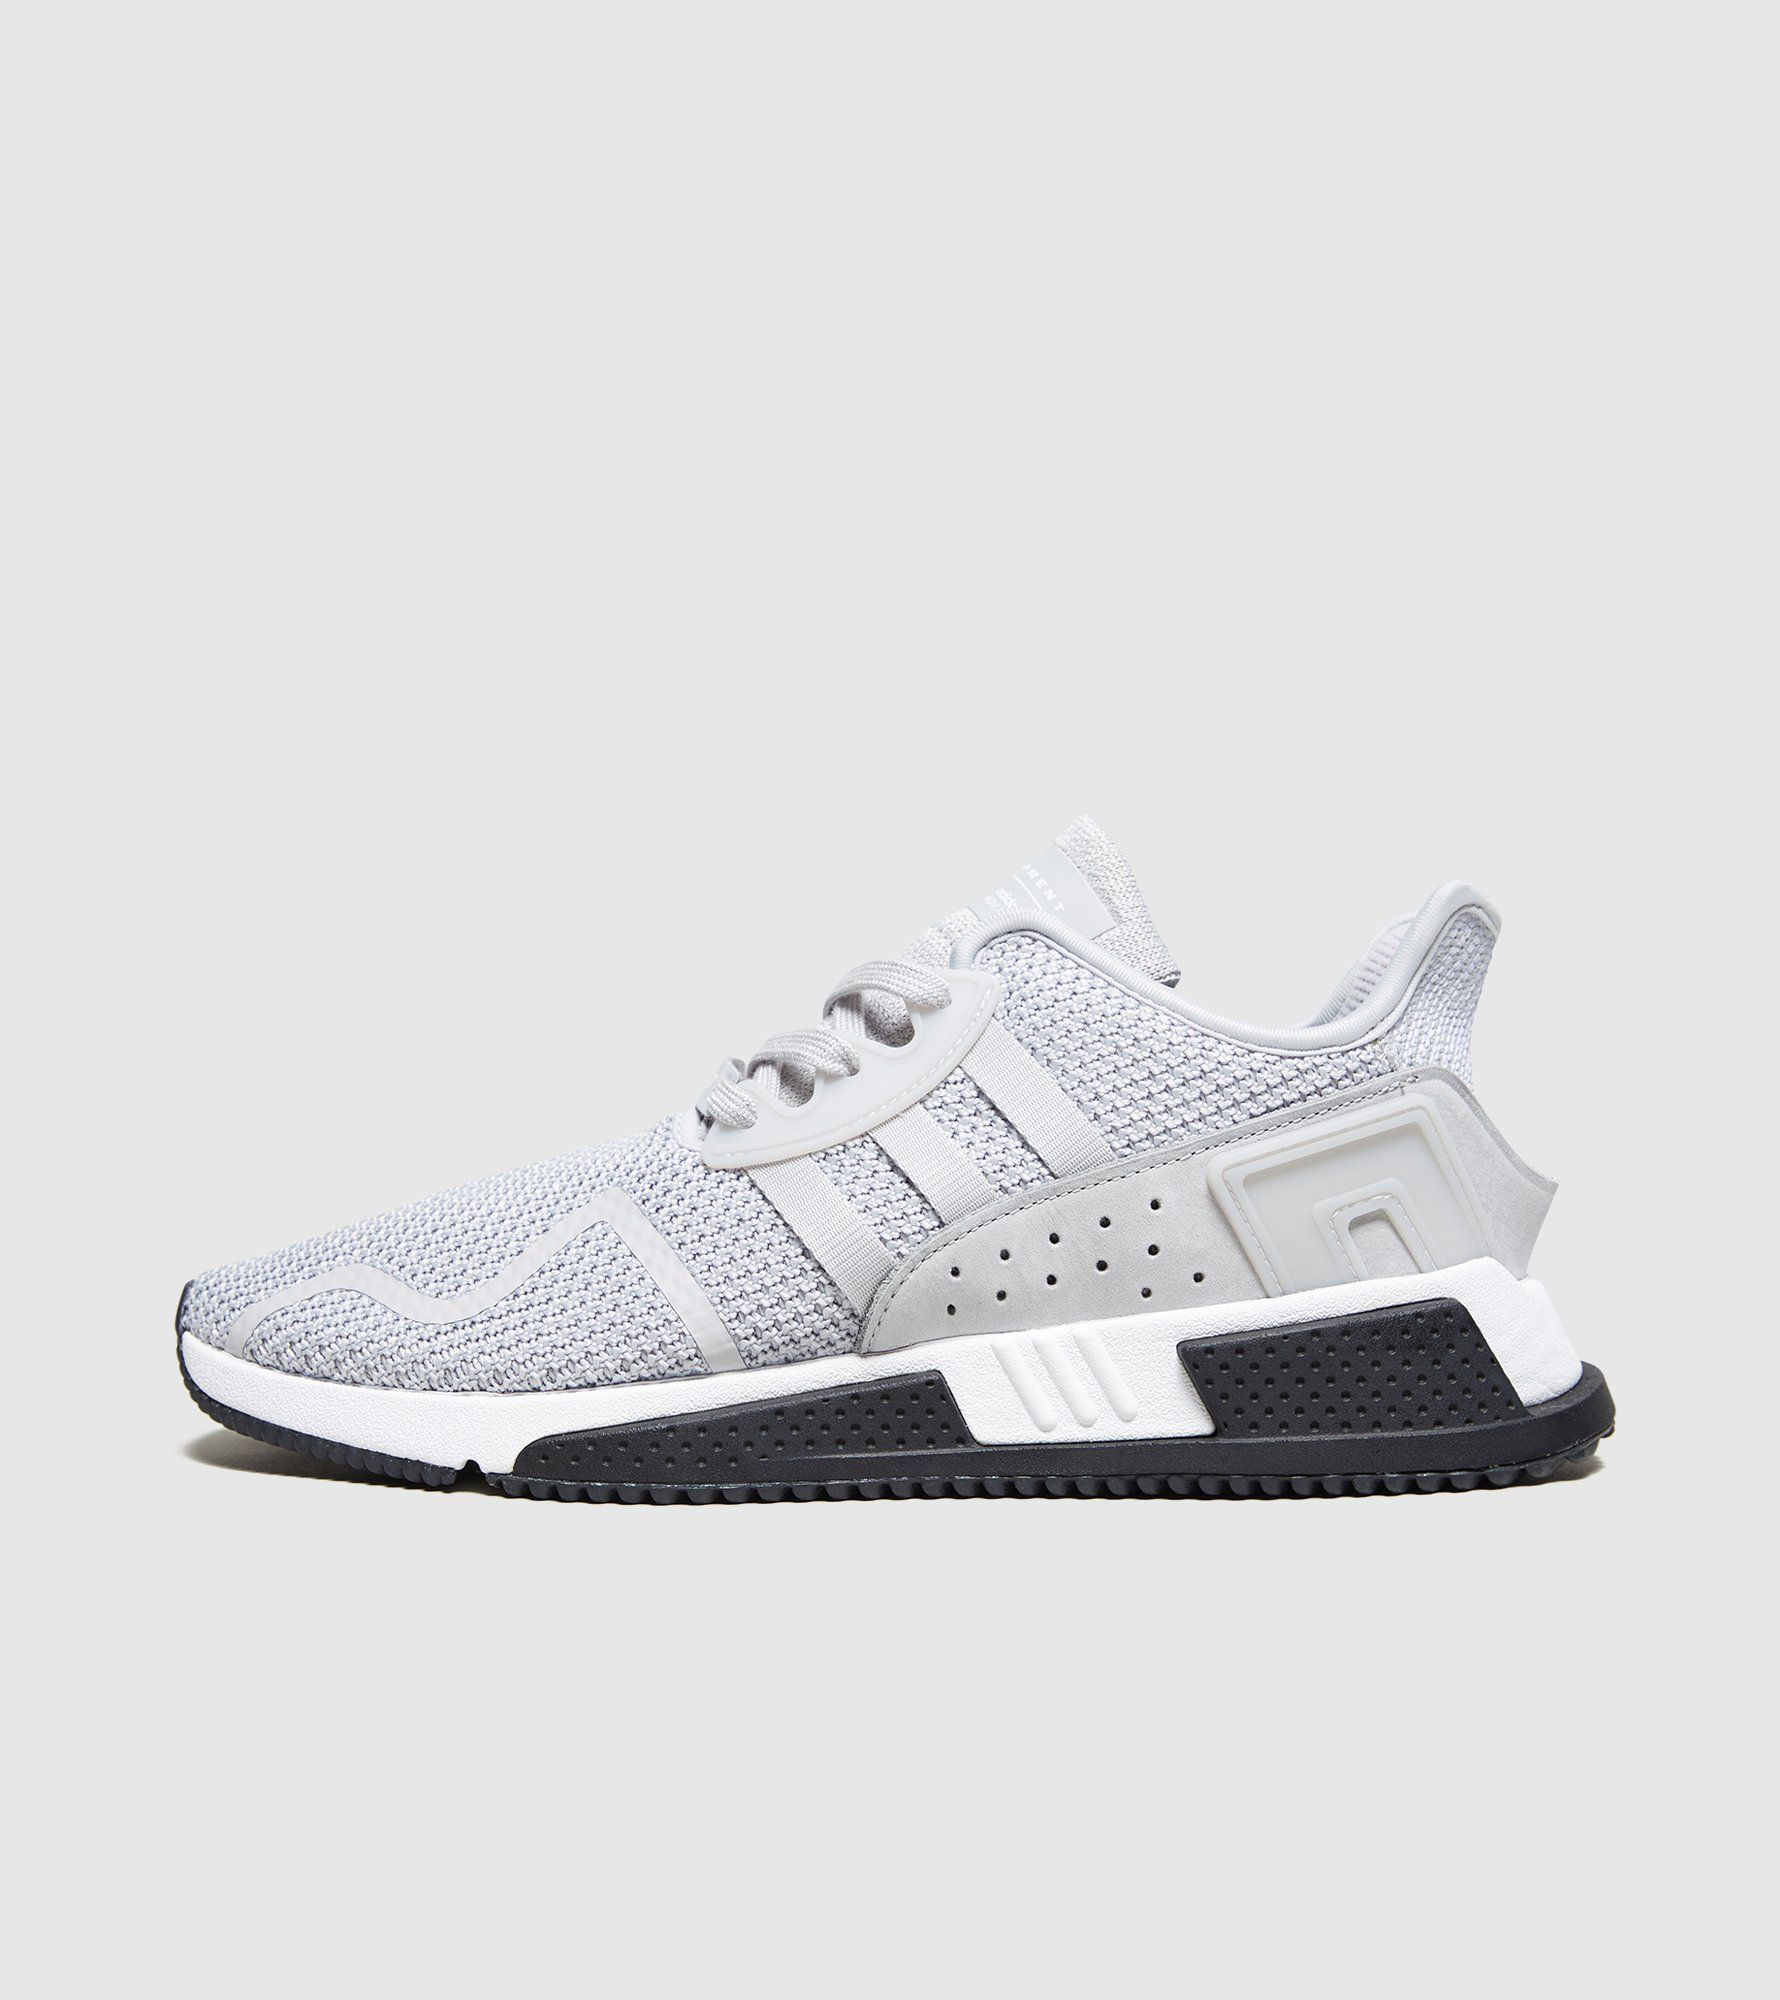 finest selection 5ee36 2cdaf adidas eqt cushion adv uk all white shoes